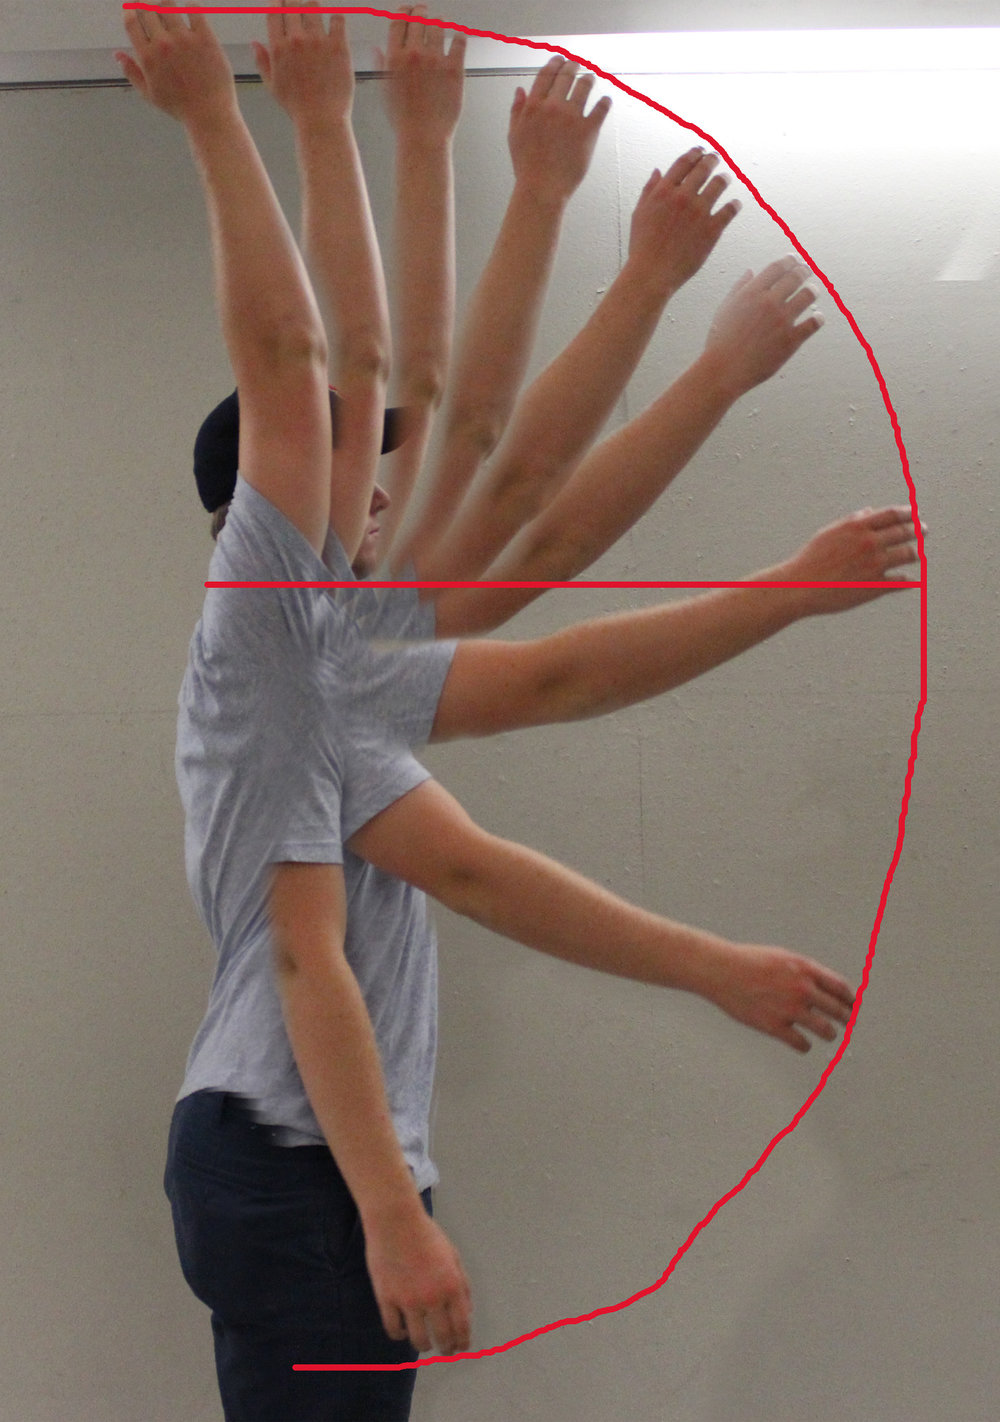 RANGE OF MOTION OF THE HUMAN ARM